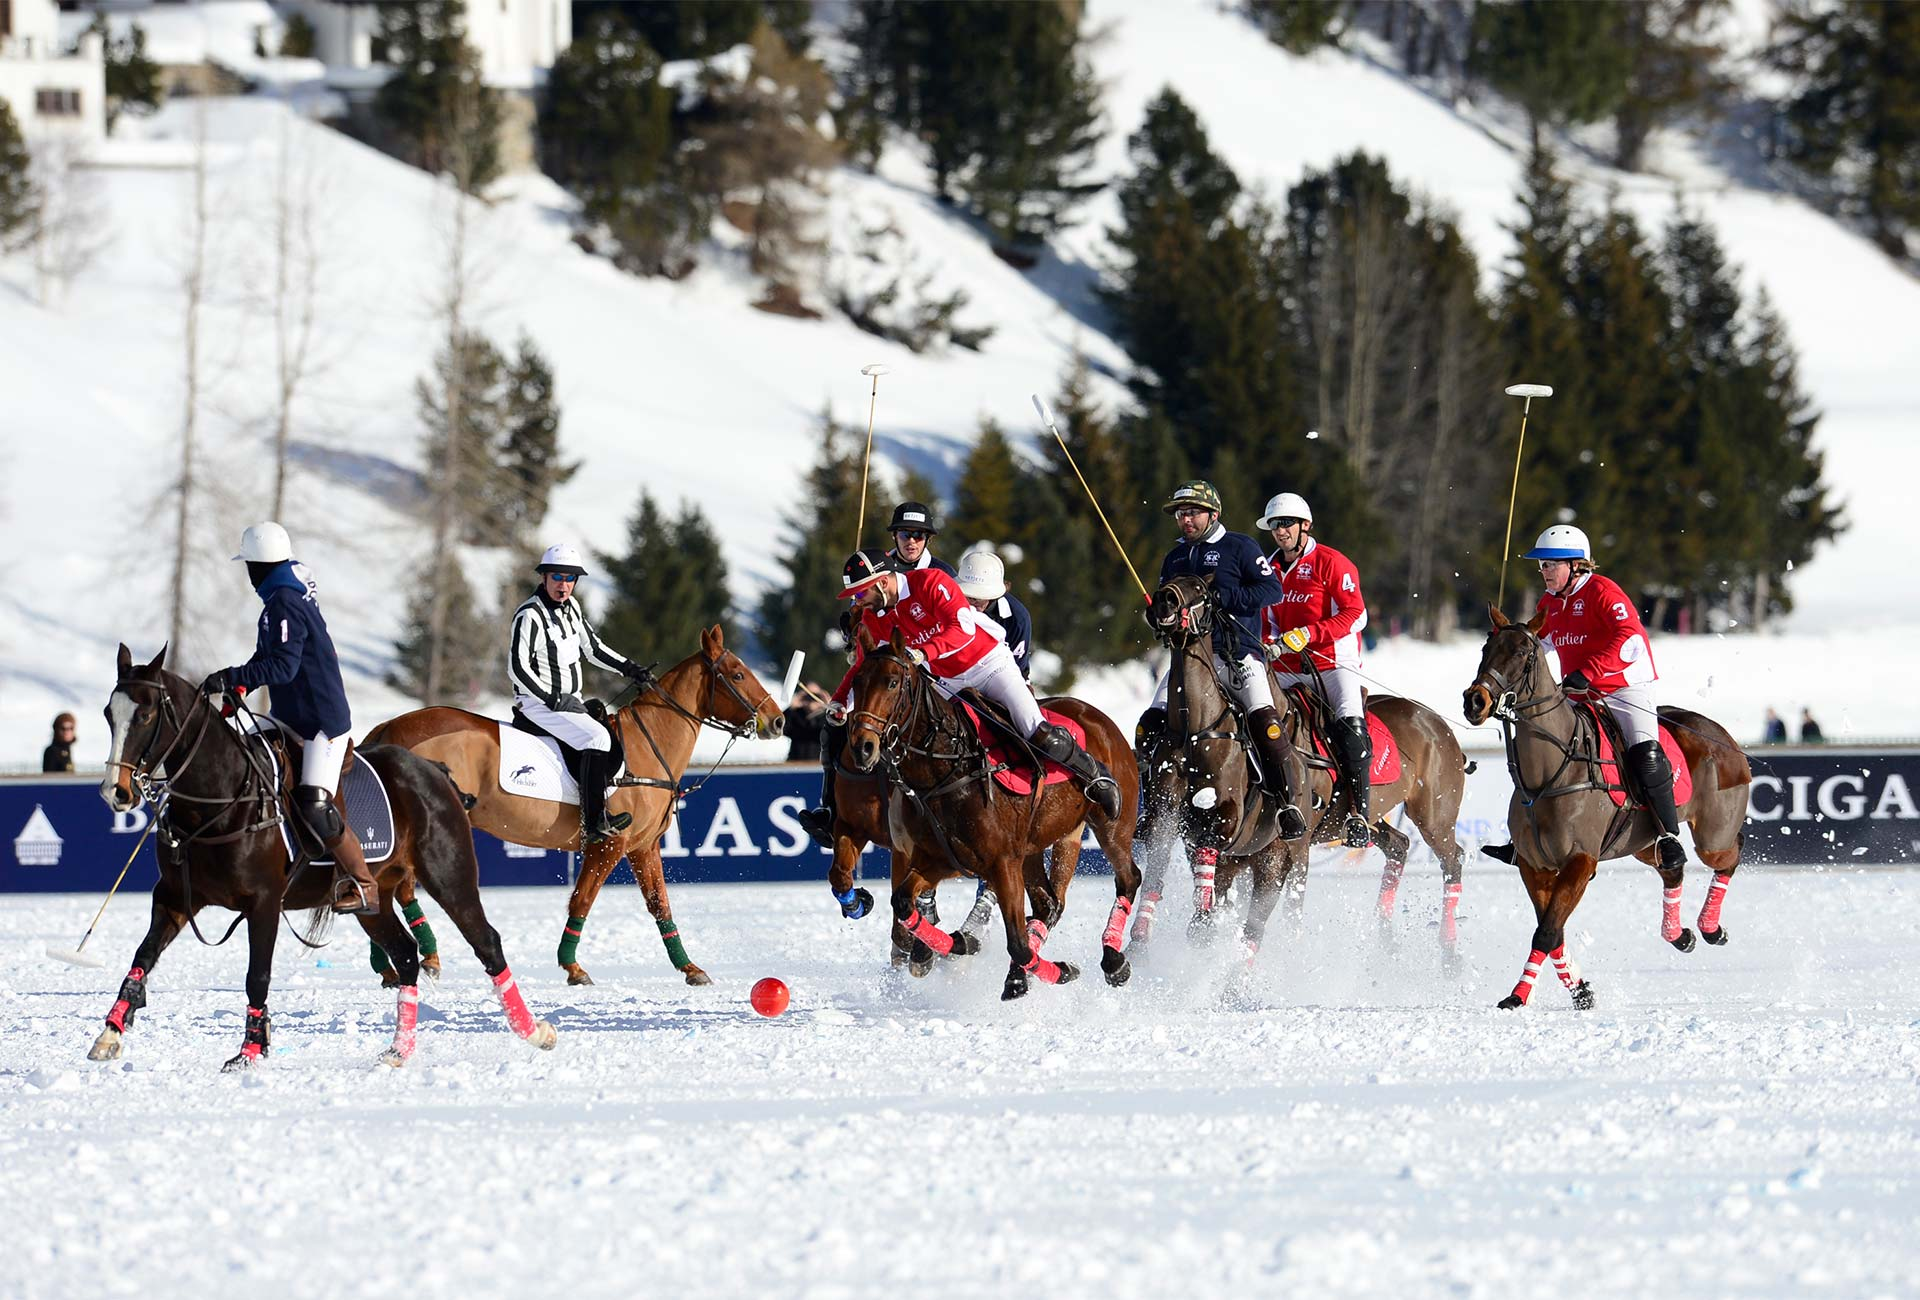 Packages Laudinella St. Moritz